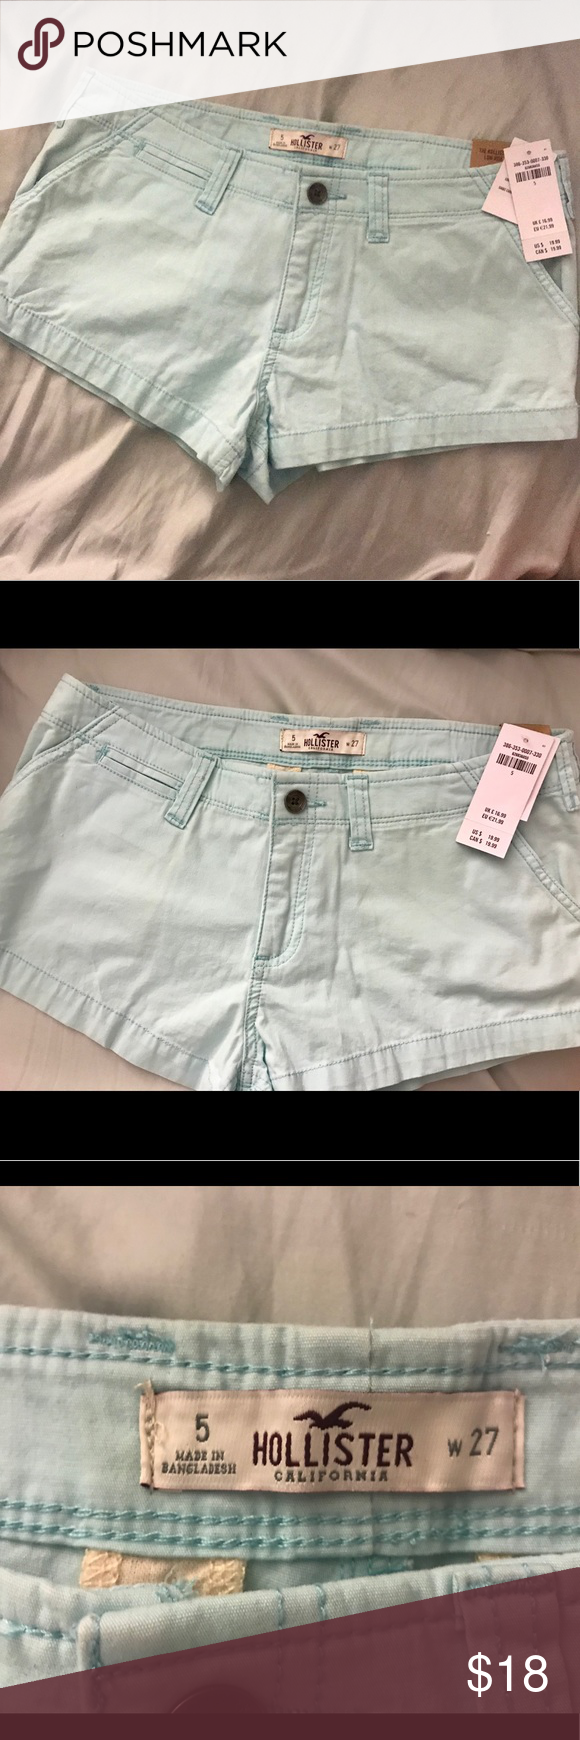 Hollister low rise light blue shorts Brand New w/ tags Hollister light blue/aqua low rise shorts!